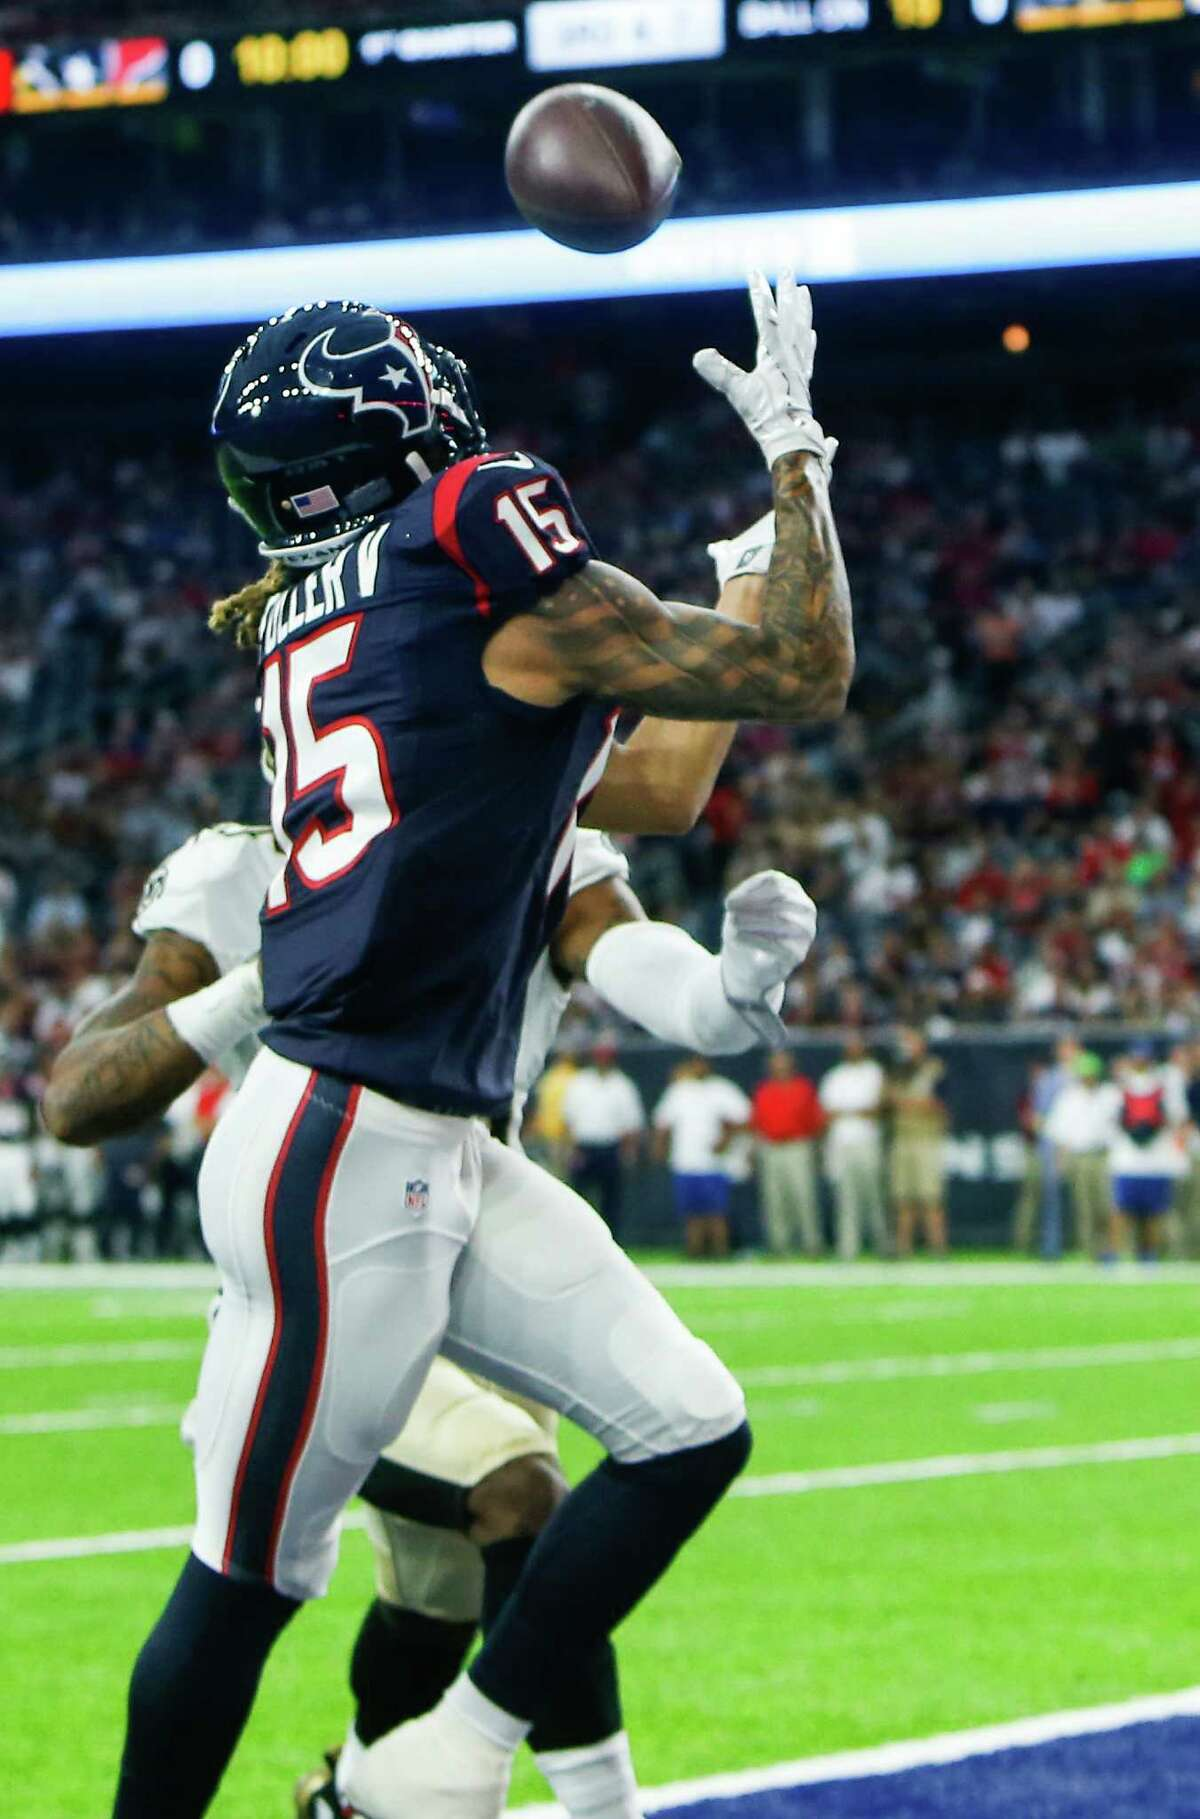 The Texans' first-round draft pick displayed speed, sound hands and precise route-running, catching a touchdown pass and finishing with four catches for 73 yards and one touchdown. Fuller also went across the middle for a 25-yard reception. He's beginning to emerge as a potentially impactful complementary presence to Pro Bowl wide receiver DeAndre Hopkins.